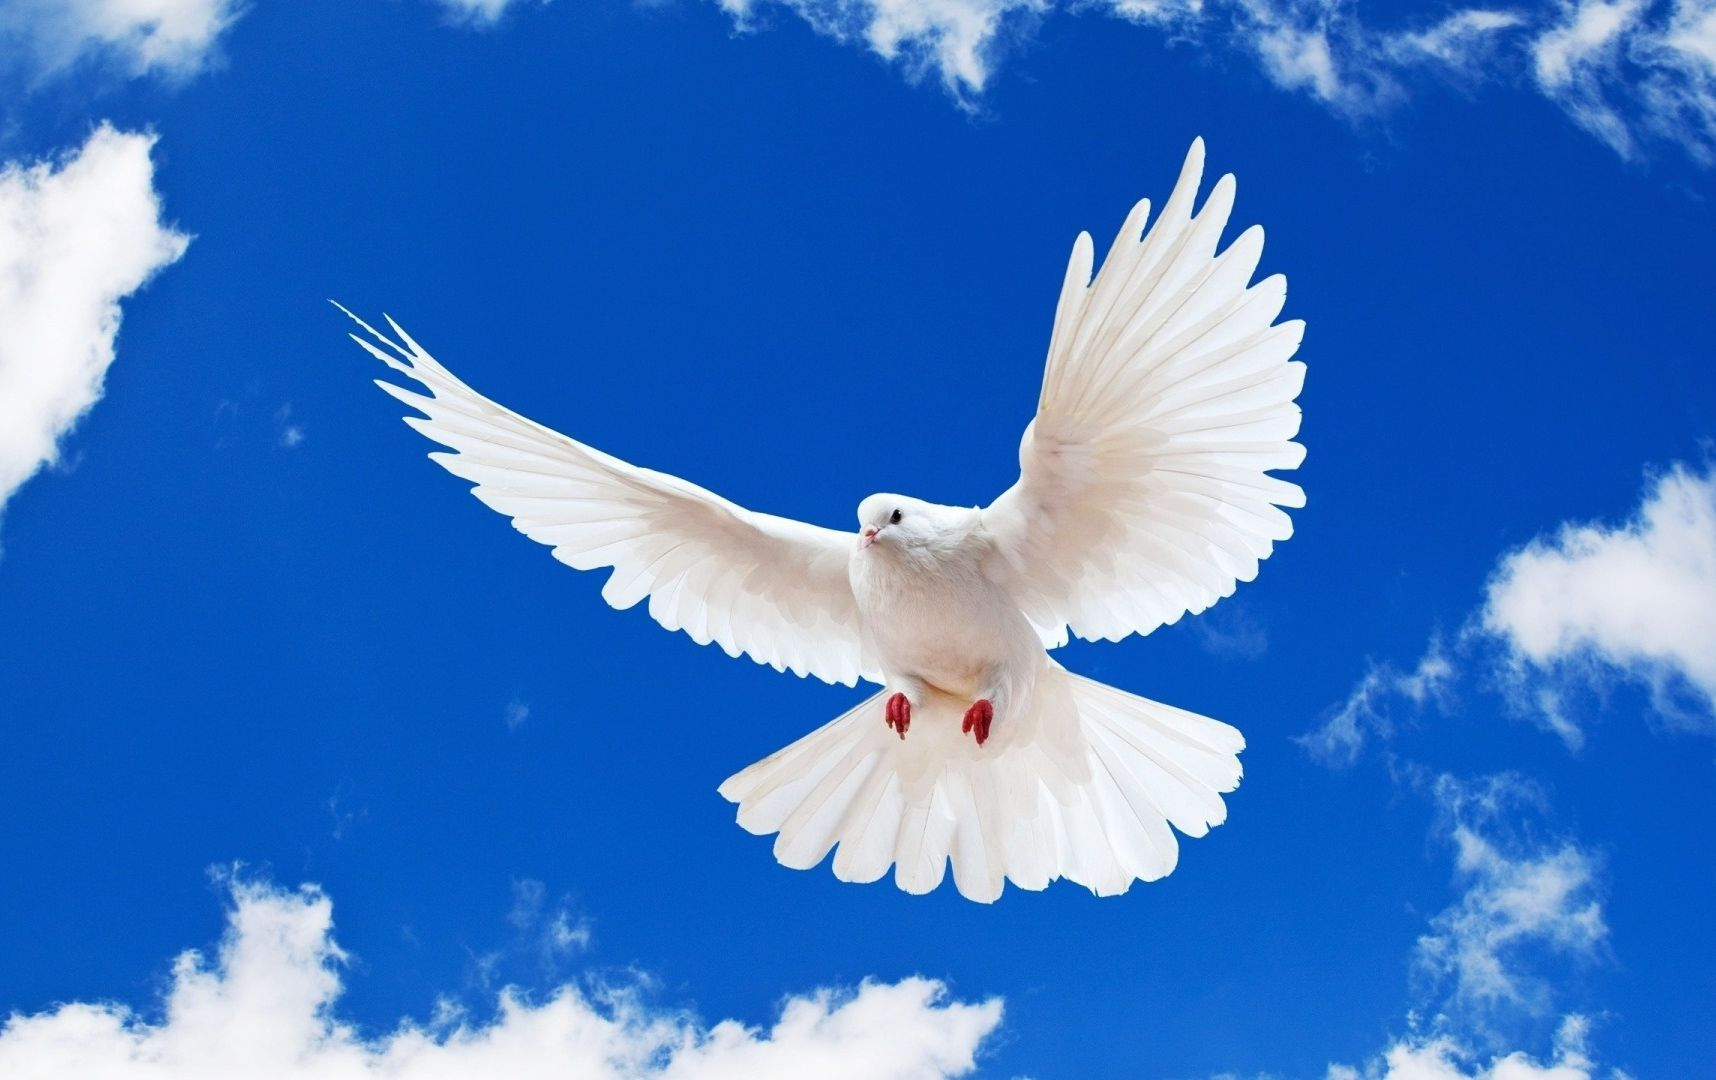 Dove Wallpapers Find best latest Dove Wallpapers in HD for your